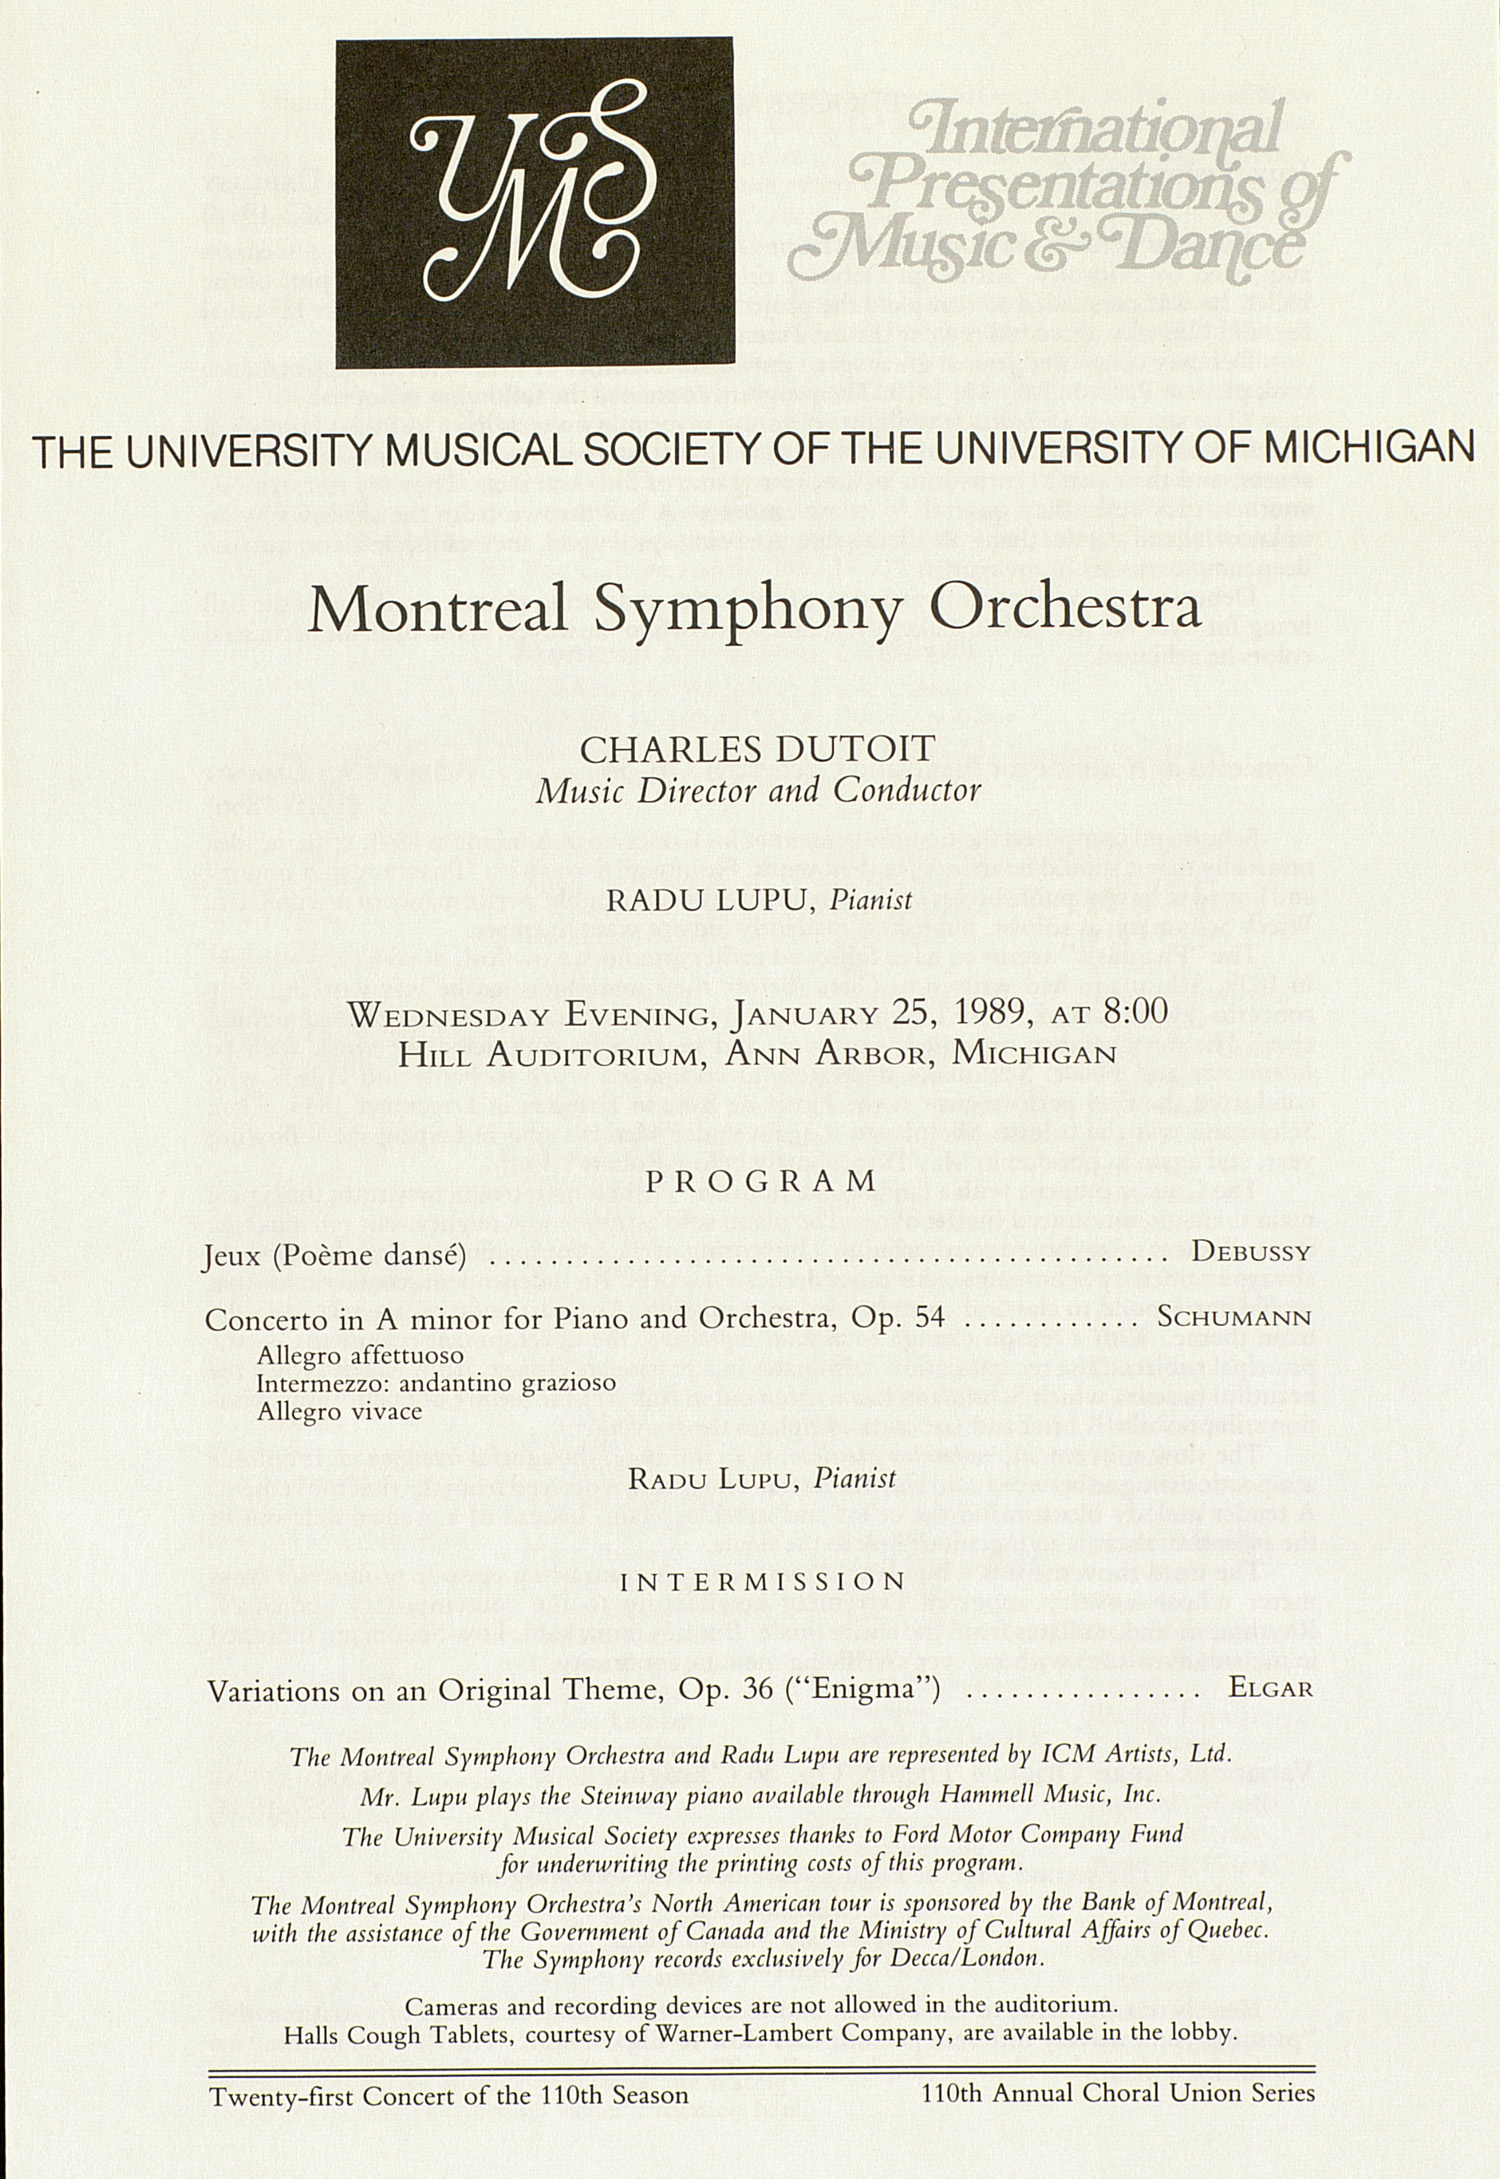 UMS Concert Program, January 25, 1989: International Presentations Of Music & Dance -- Montreal Symphony Orchestra image